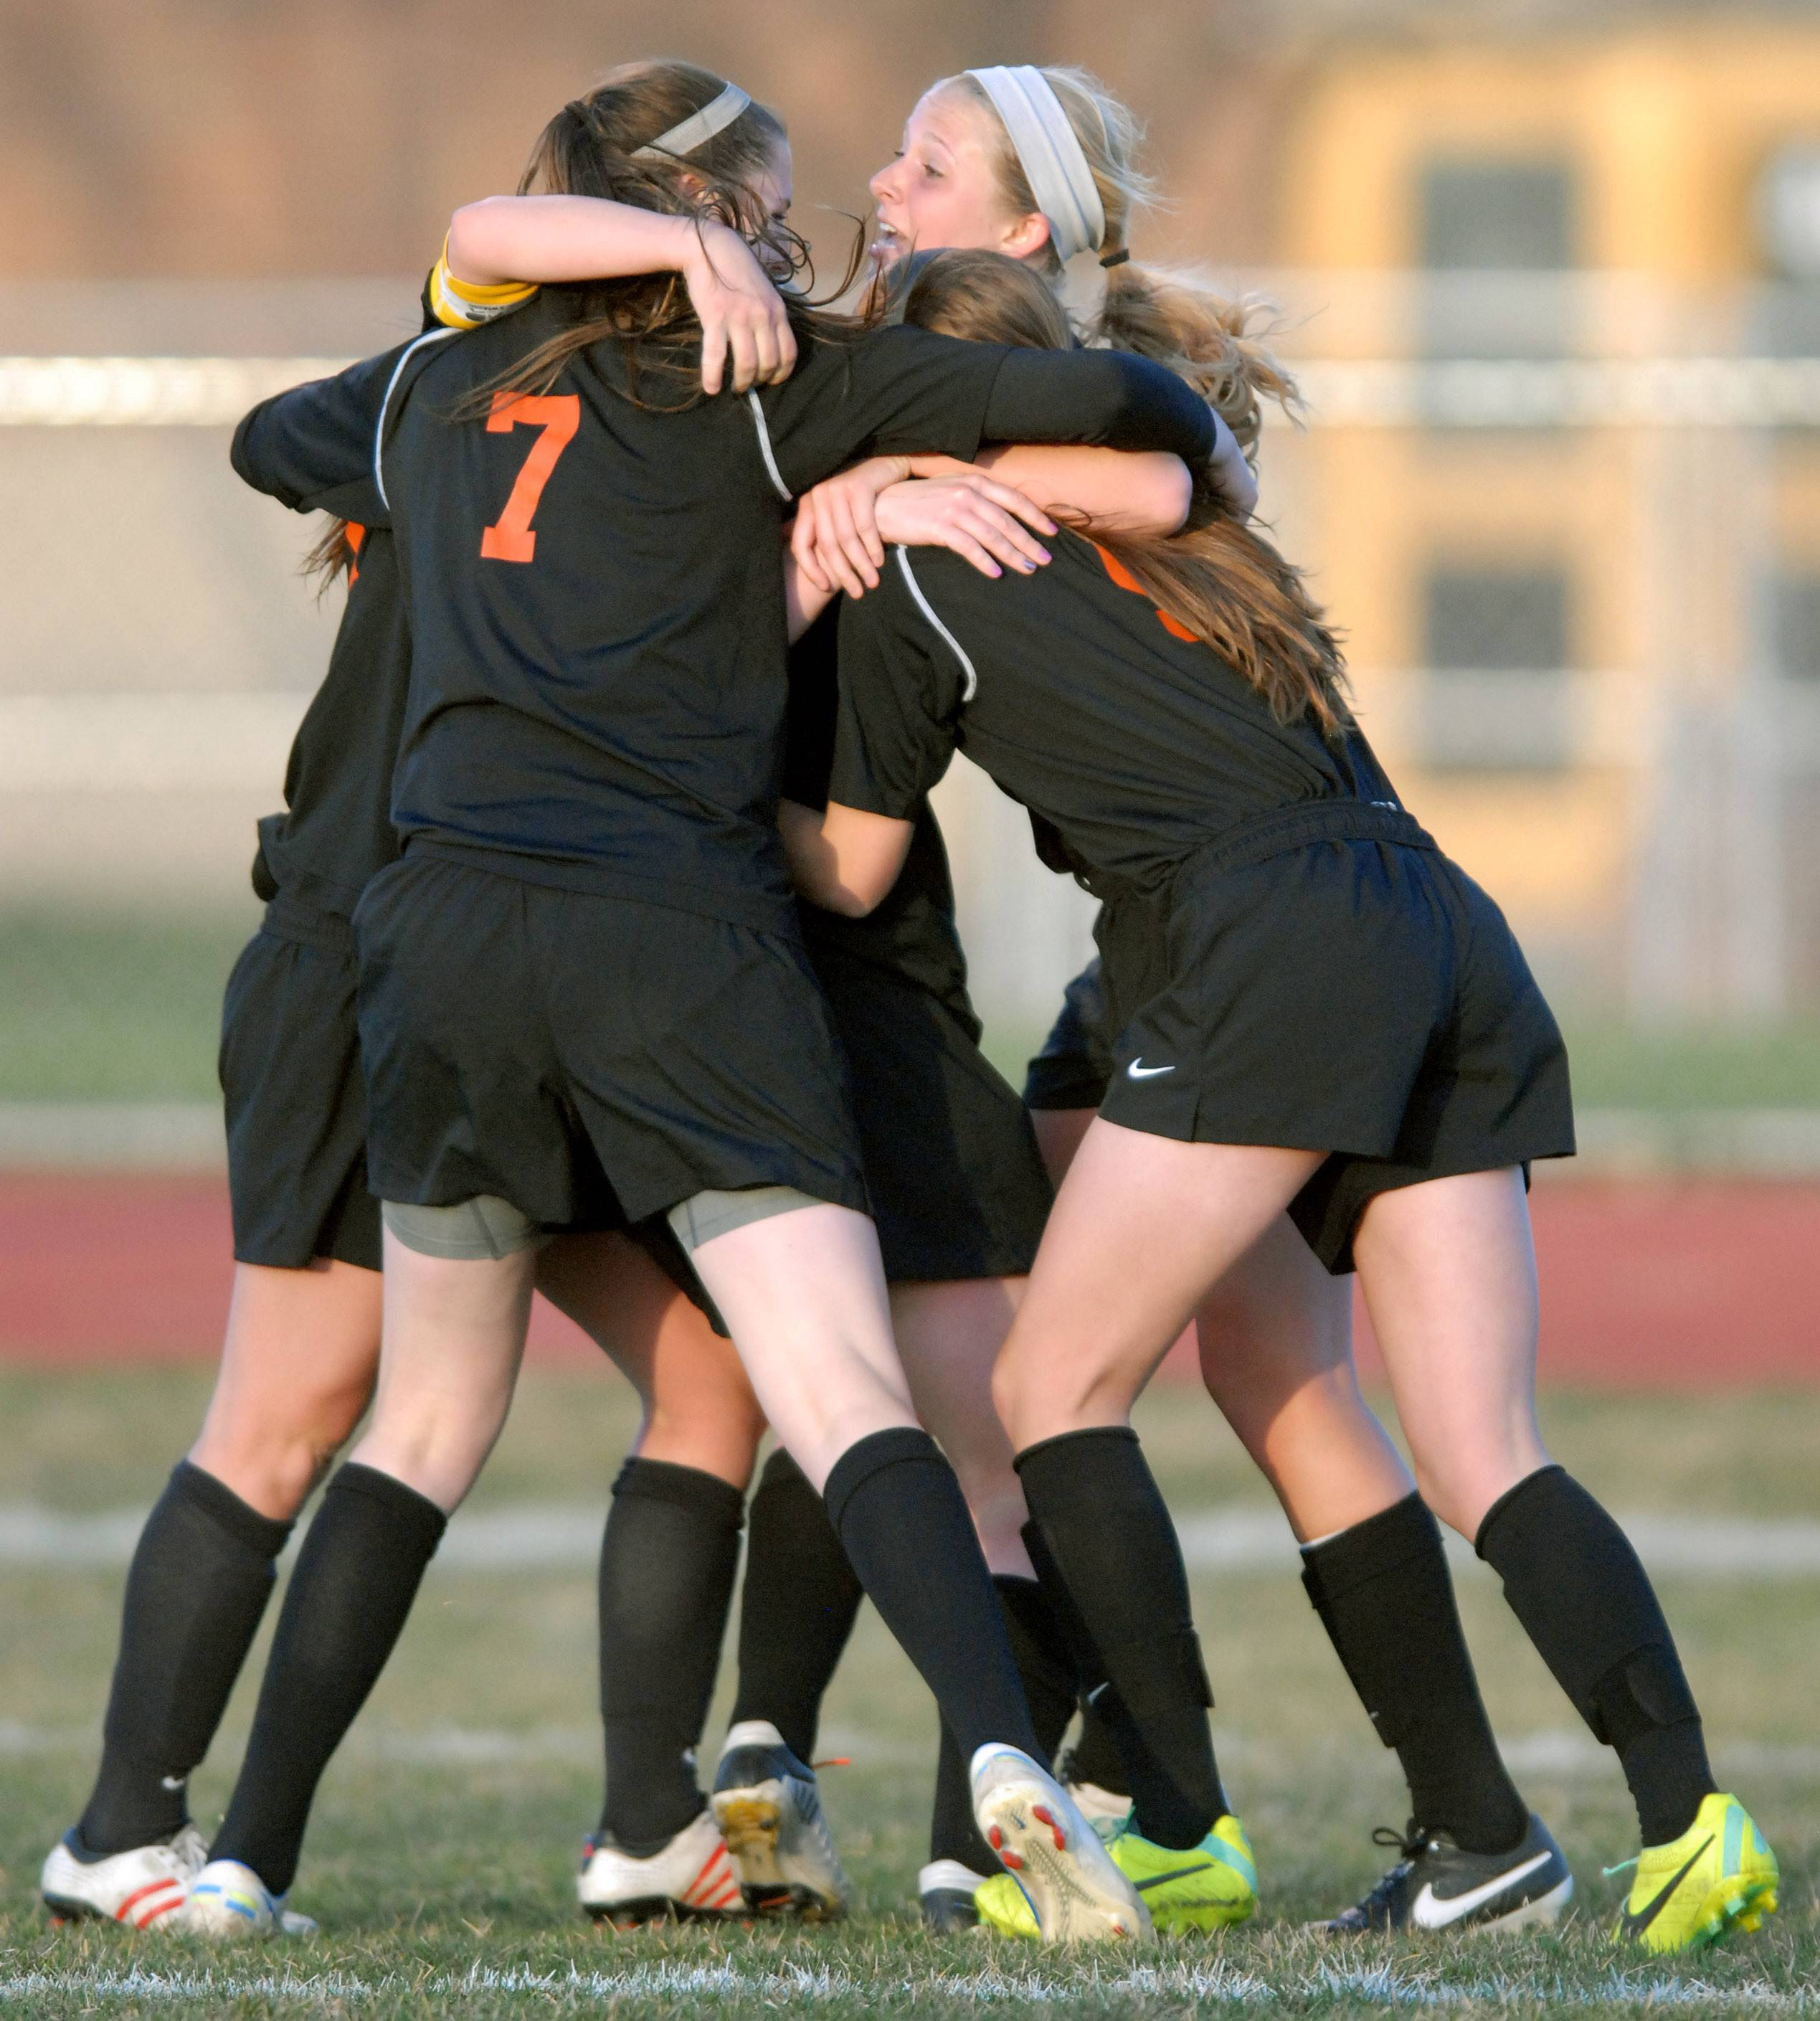 St. Charles East teammates swarm together after scoring a goal over St. Charles North in the first half on Tuesday, April 22.